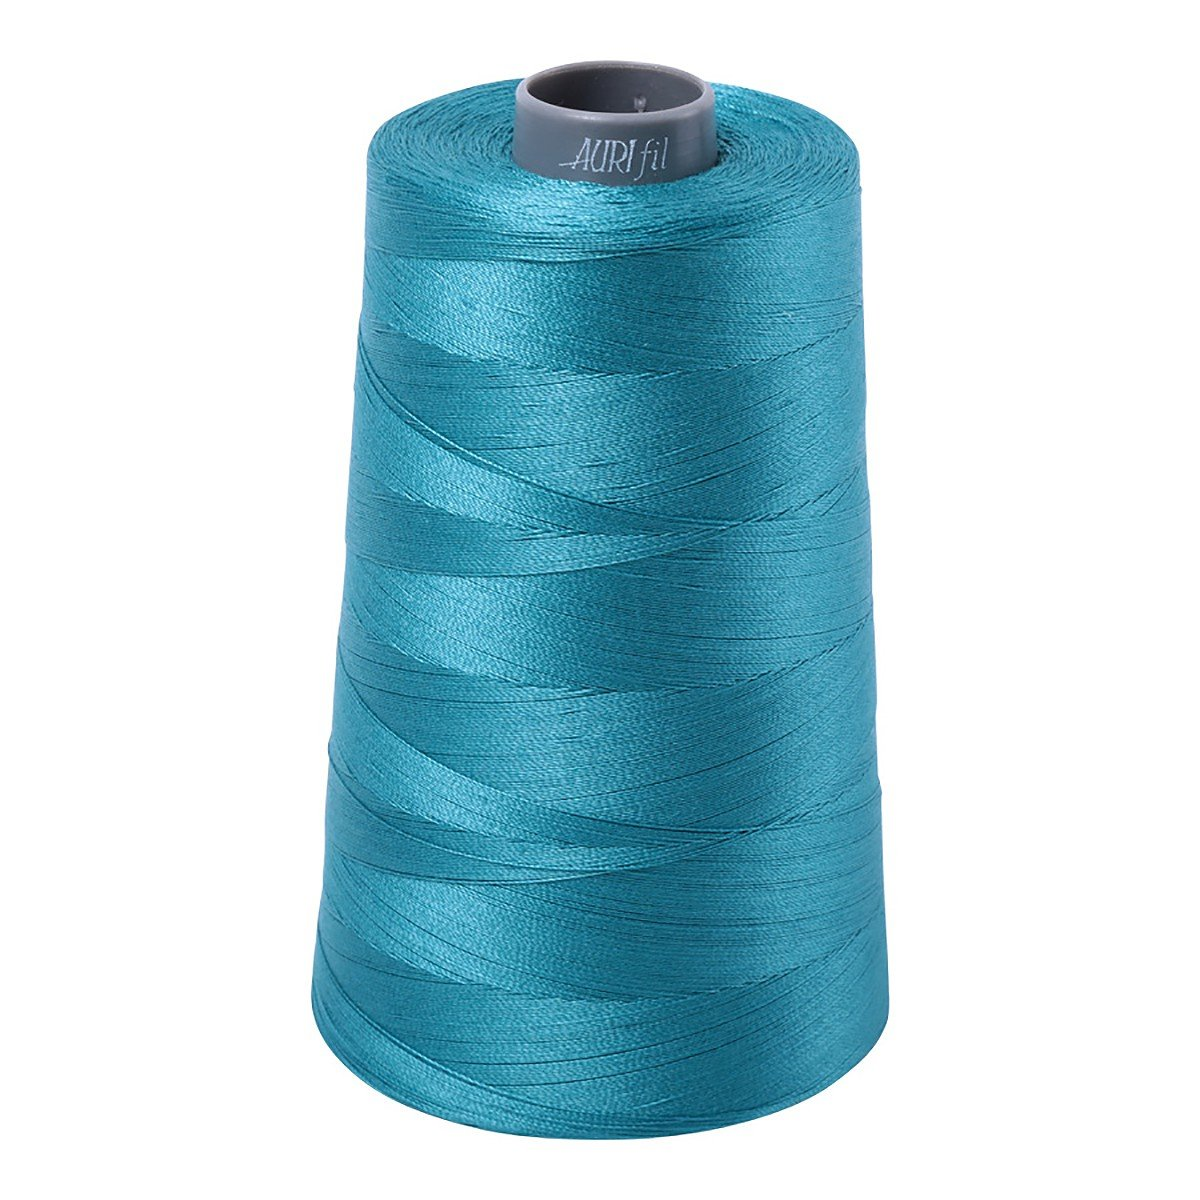 Mako (Cotton) Embroidery Thread 28wt 3609yds Dark Turquoise